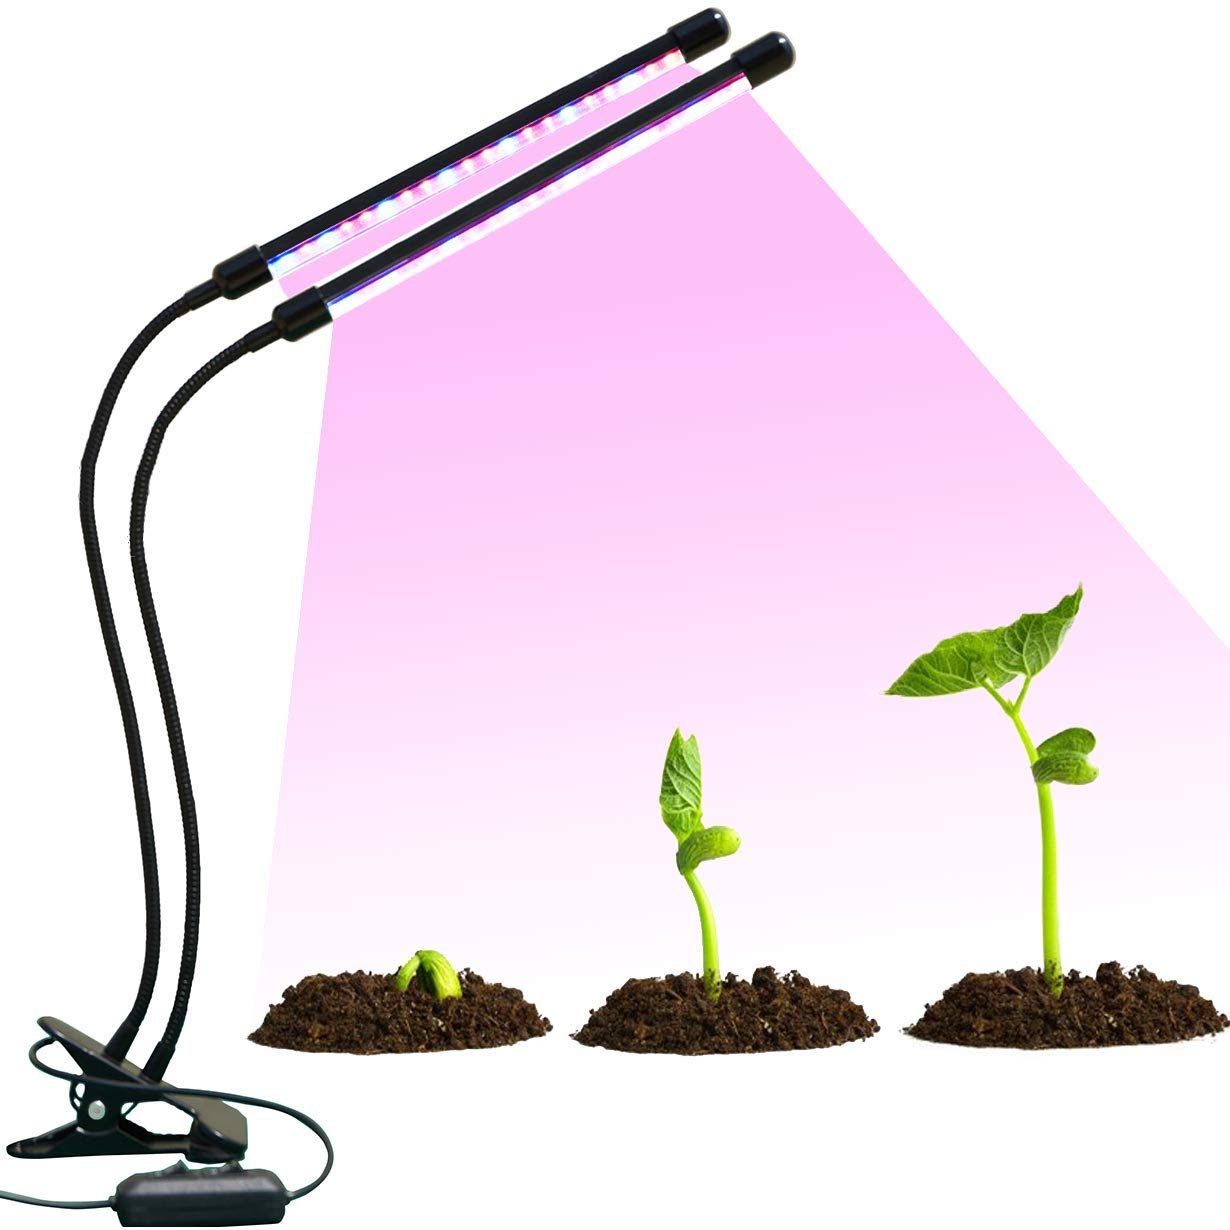 18W Led Grow Light,YOUDUO Multiple Timing Range and 4 Dimmable Levels Plant Grow Lights for Indoor Plants with Red/Blue Spectrum,Adjustable Gooseneck,3 Switch Modes,Auto Turn on/Off